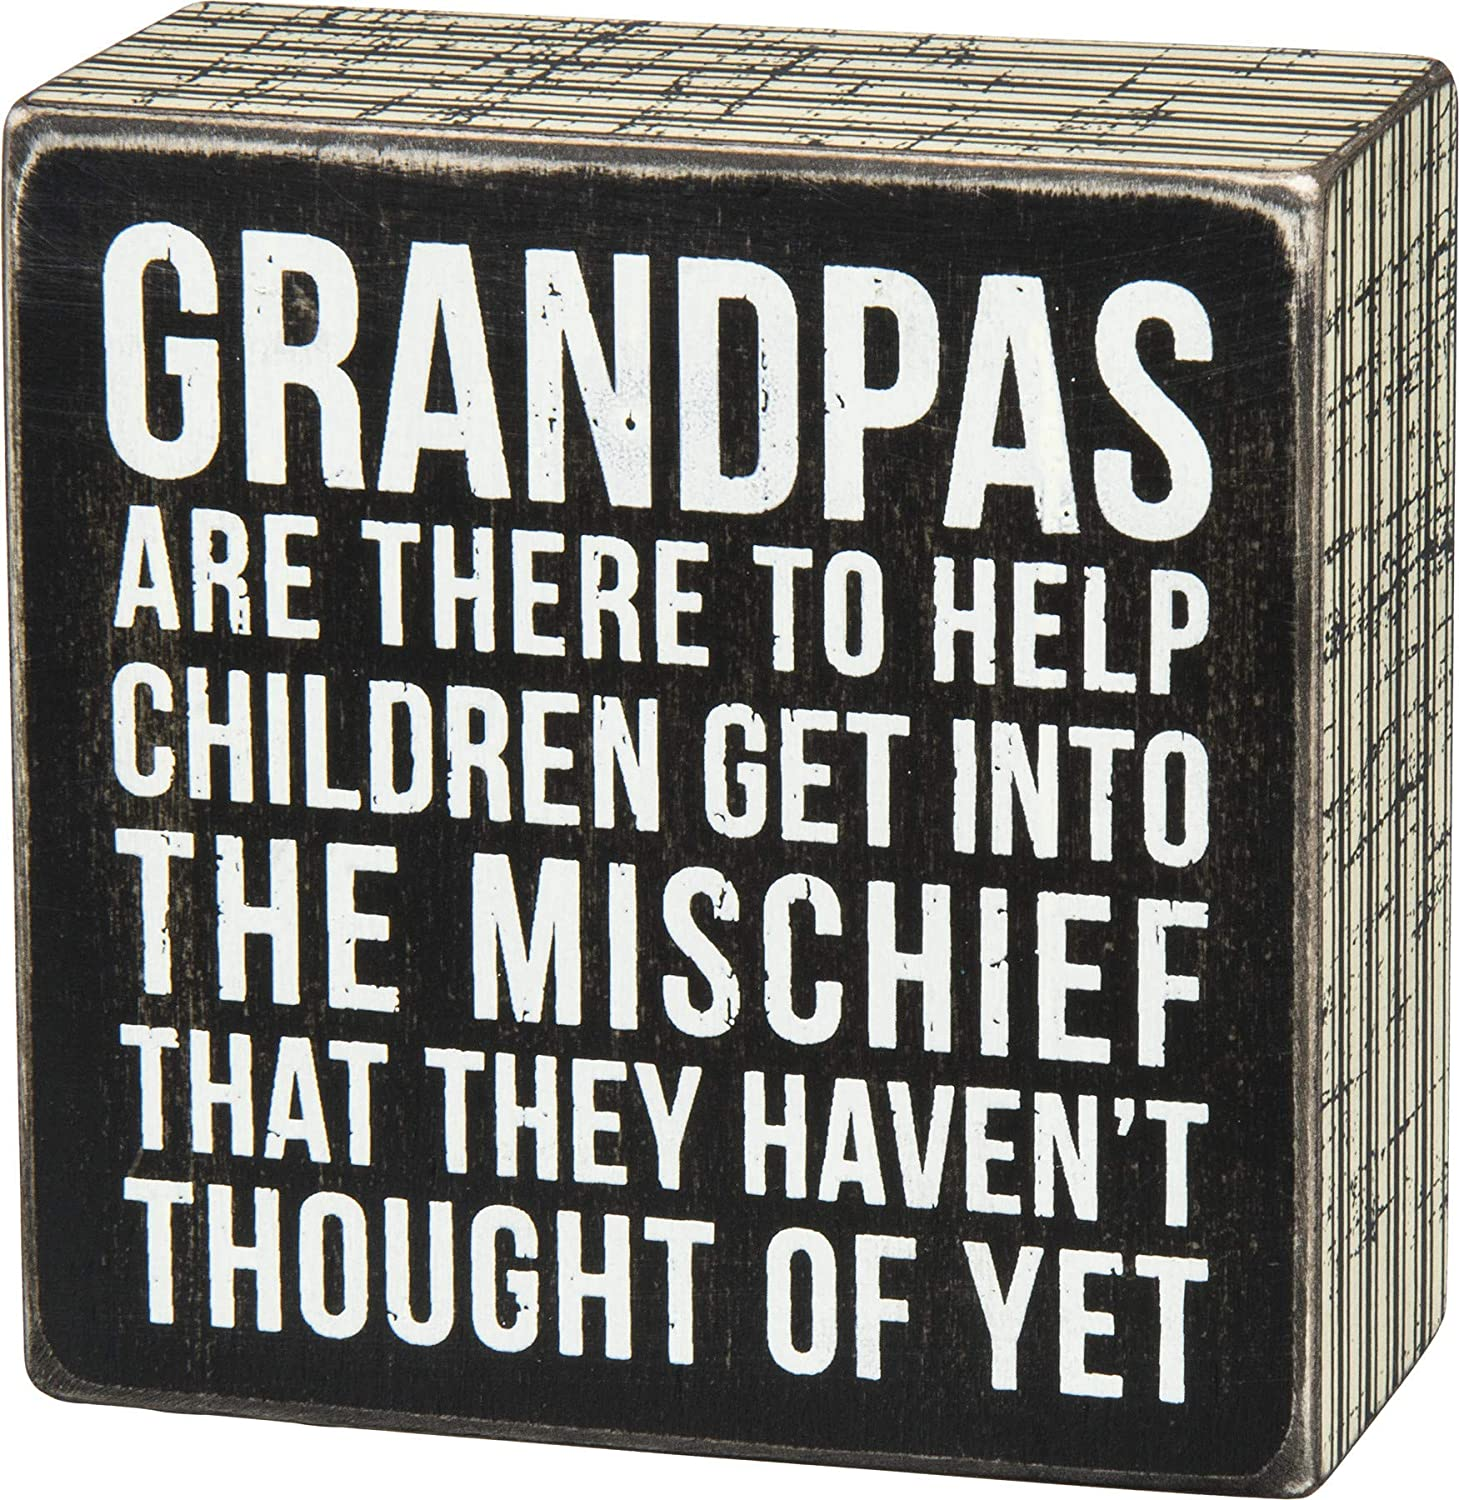 25-gifts-for-new-grandparents-grandpa-mischief-sign